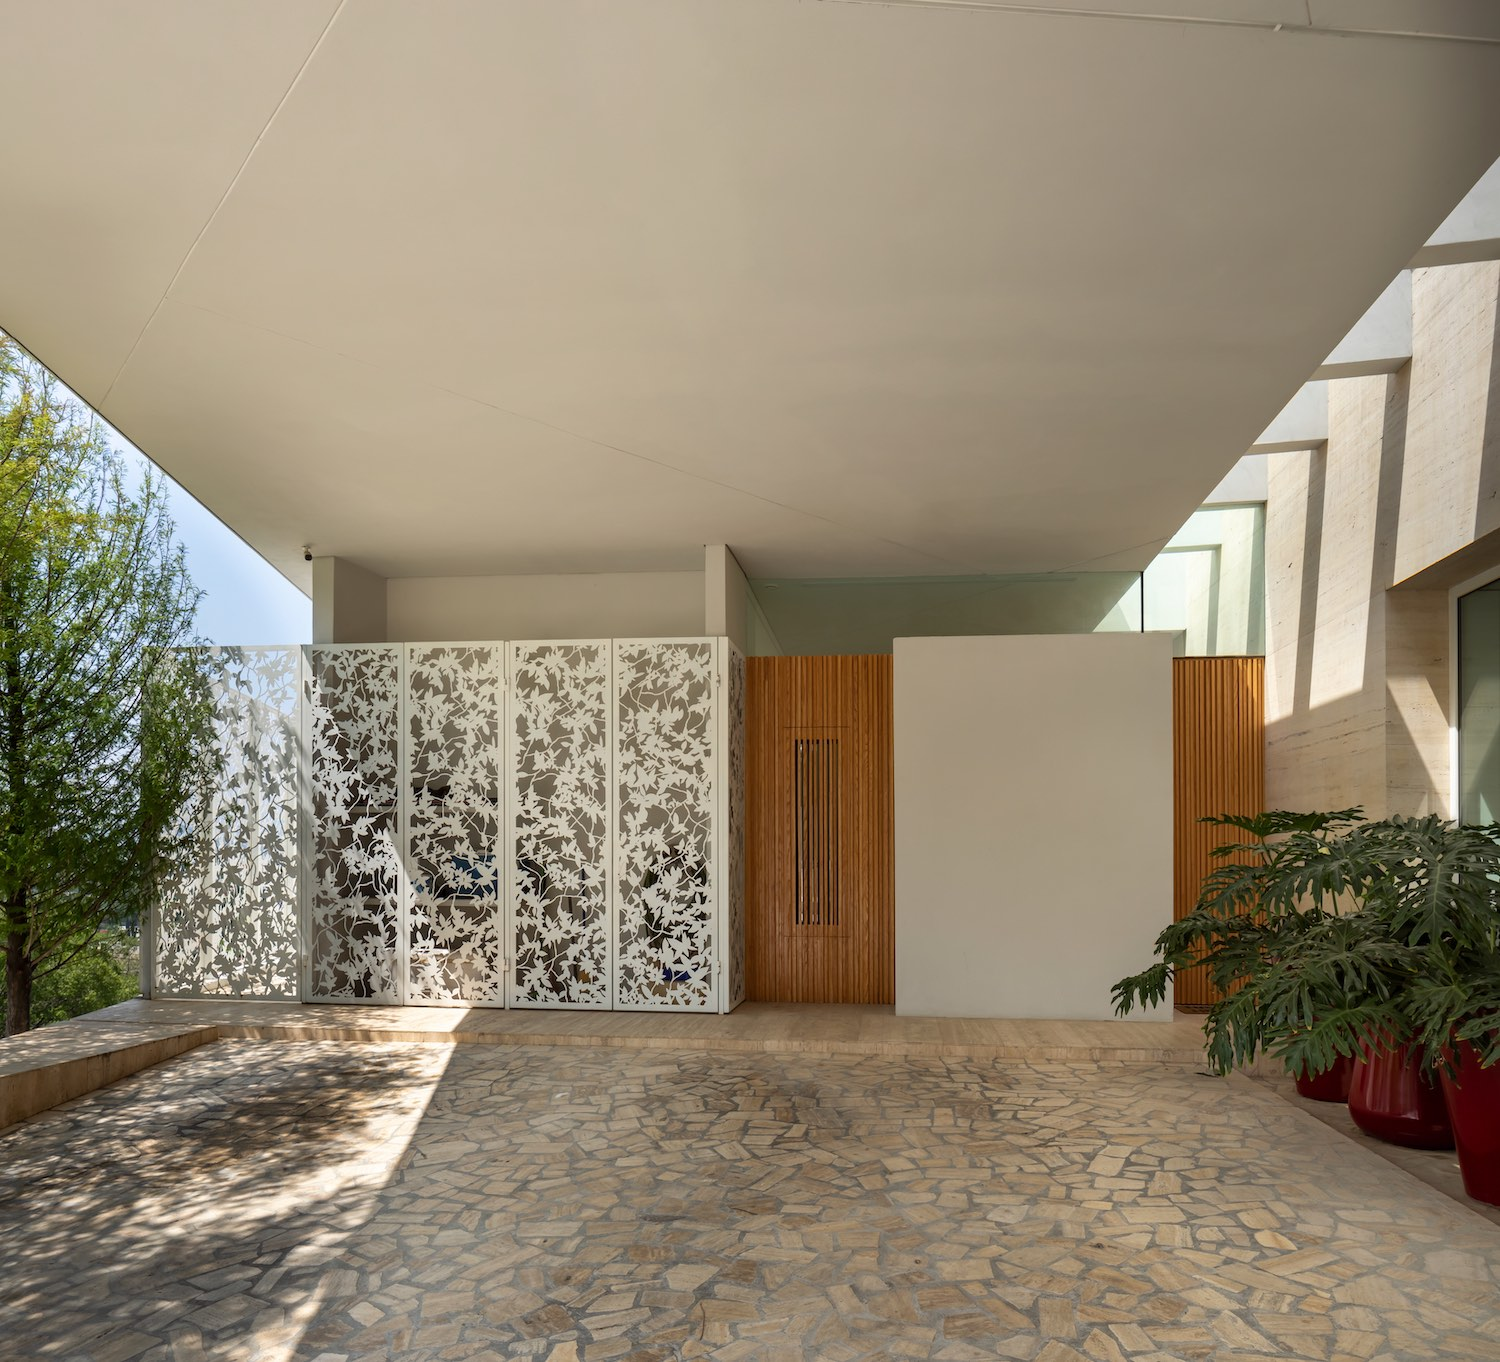 the house with metallic partition wall